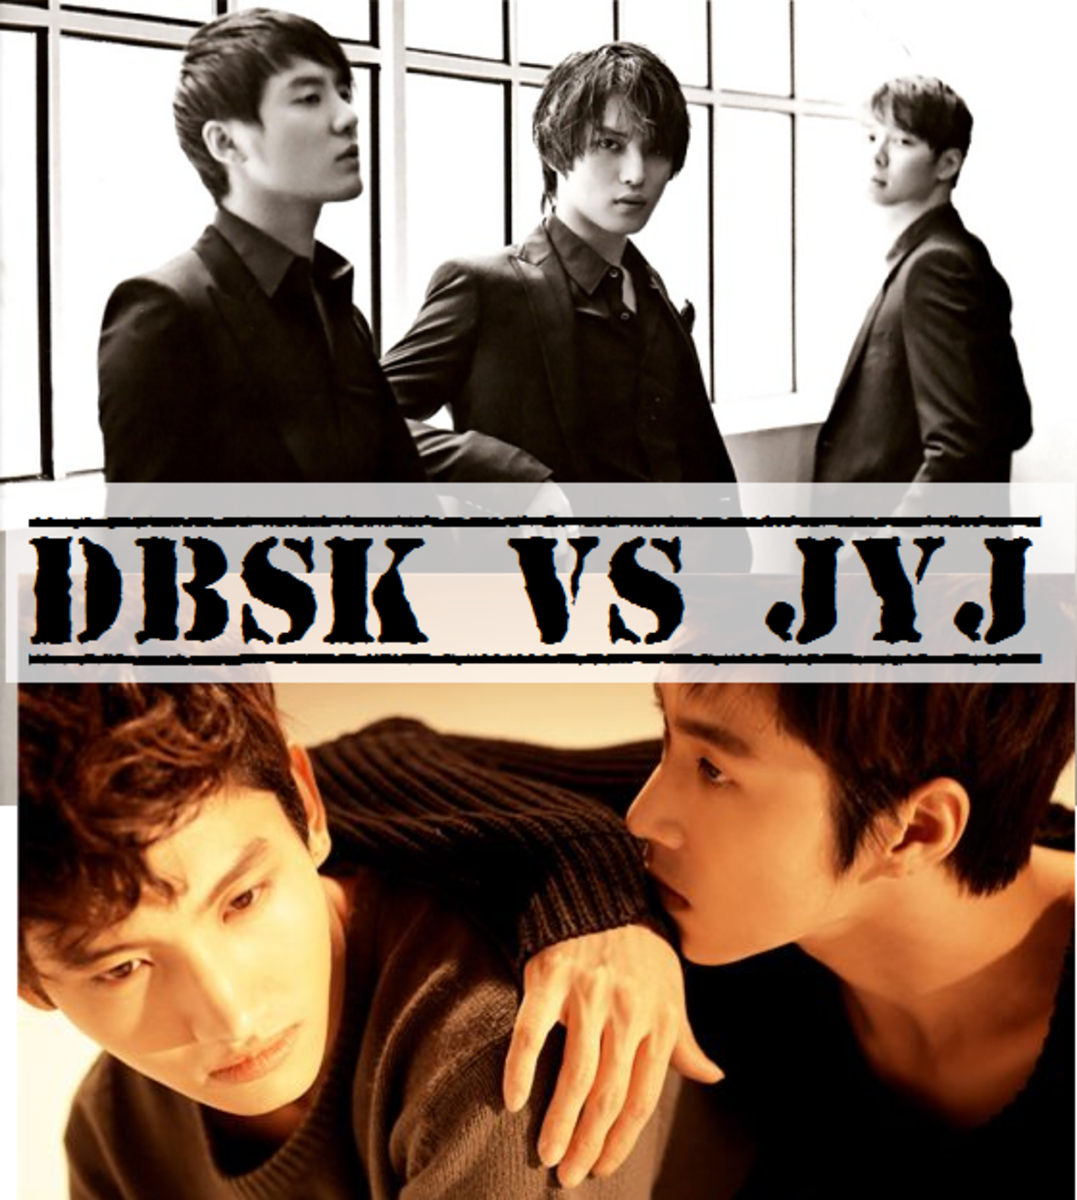 DBSK/TVXQ broke up in 2009. The three members who left are now known as JYJ. The two bands are undeniably successful.